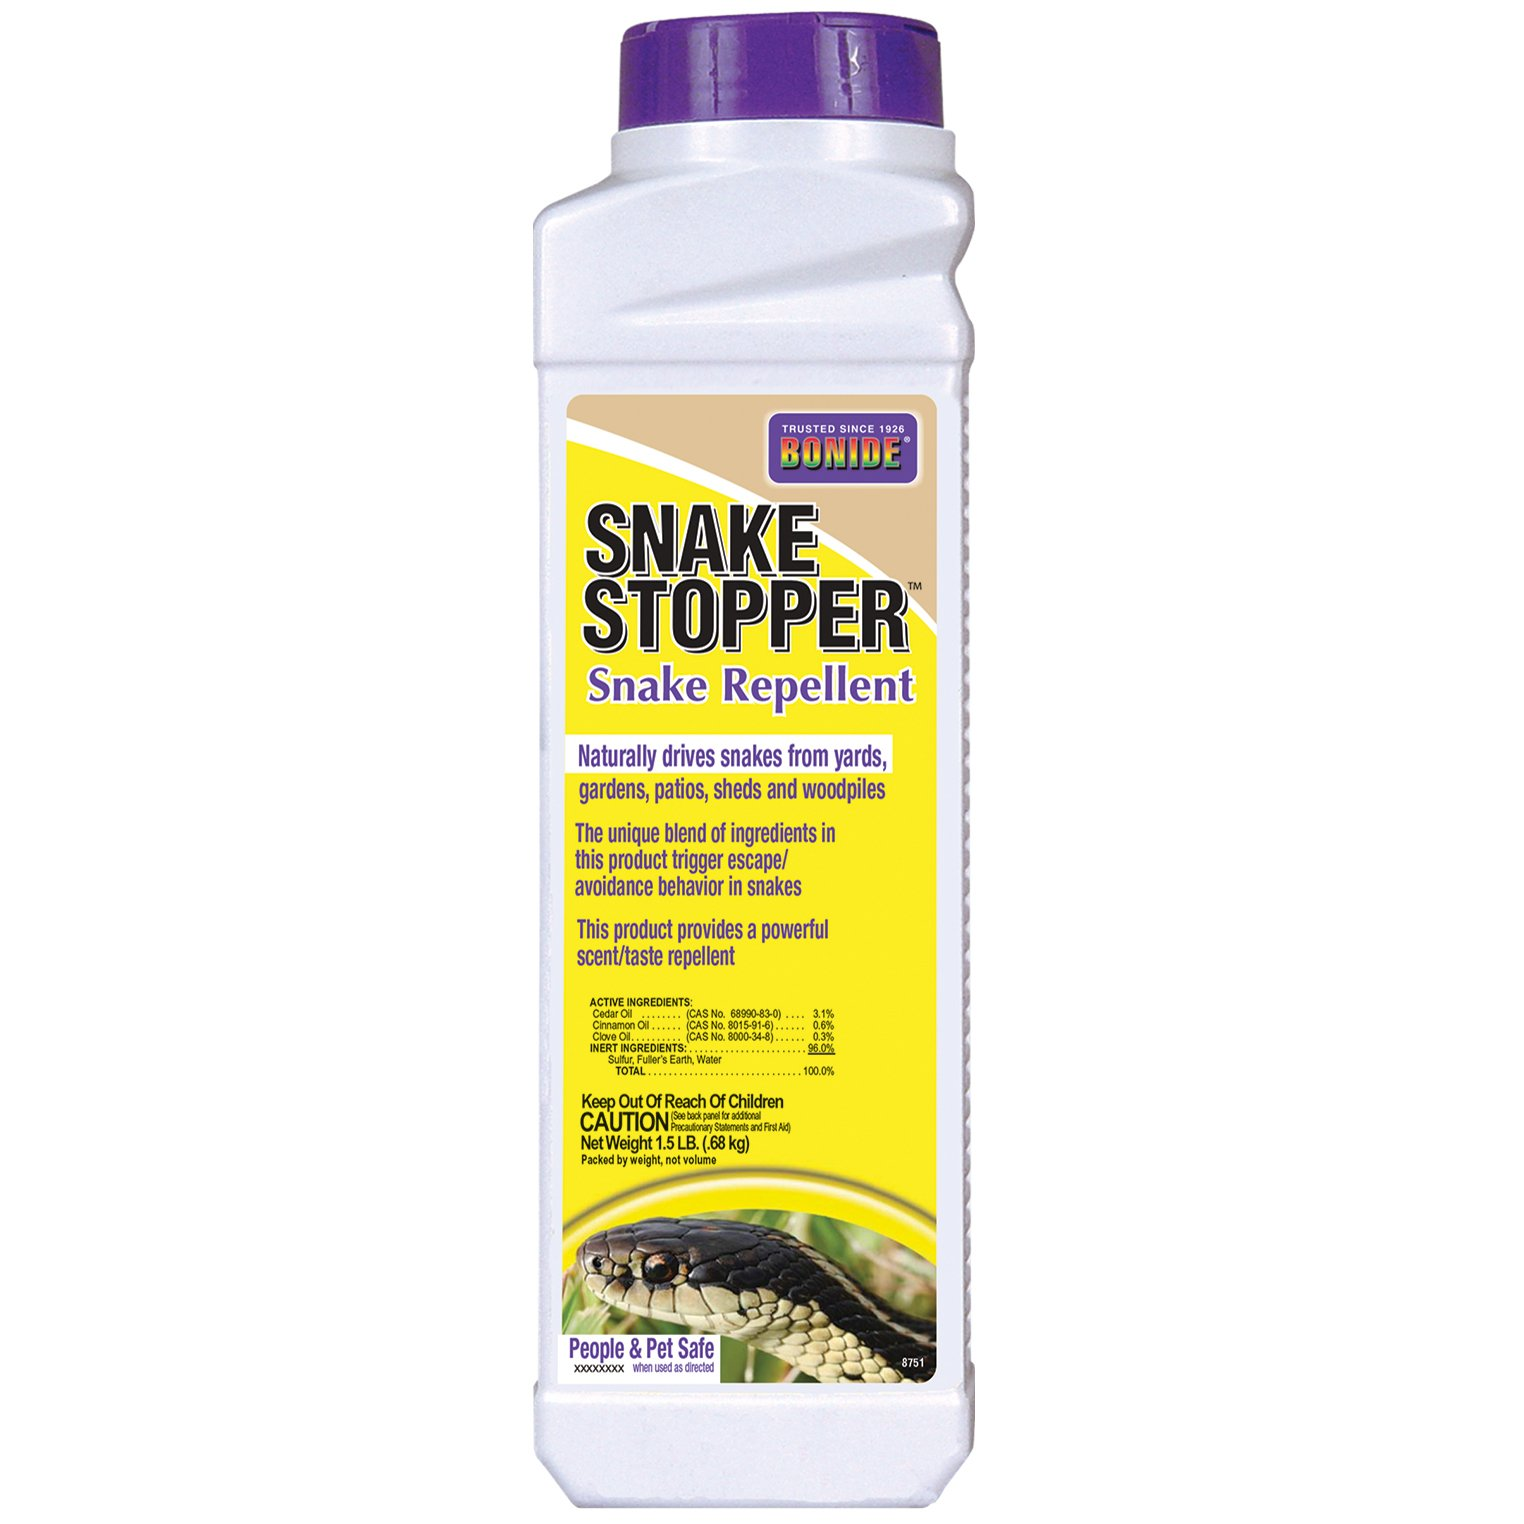 Bonide Snake Stopper 8751 Repellent